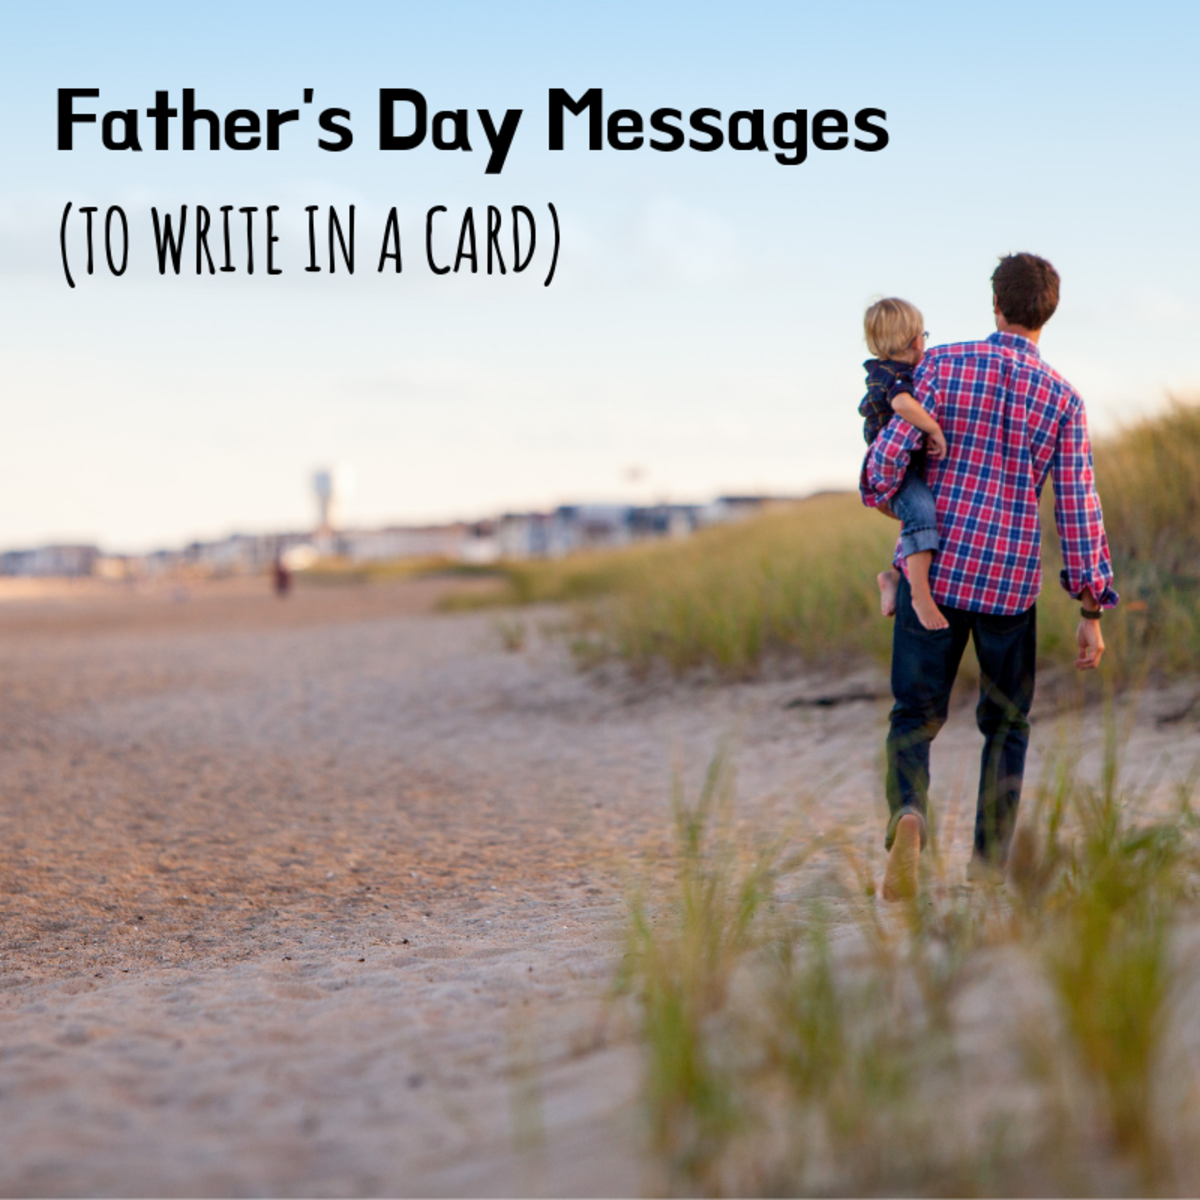 If you want to write your dad a stellar card this Father's Day but don't know where to begin, look over these example messages for ideas and inspiration.